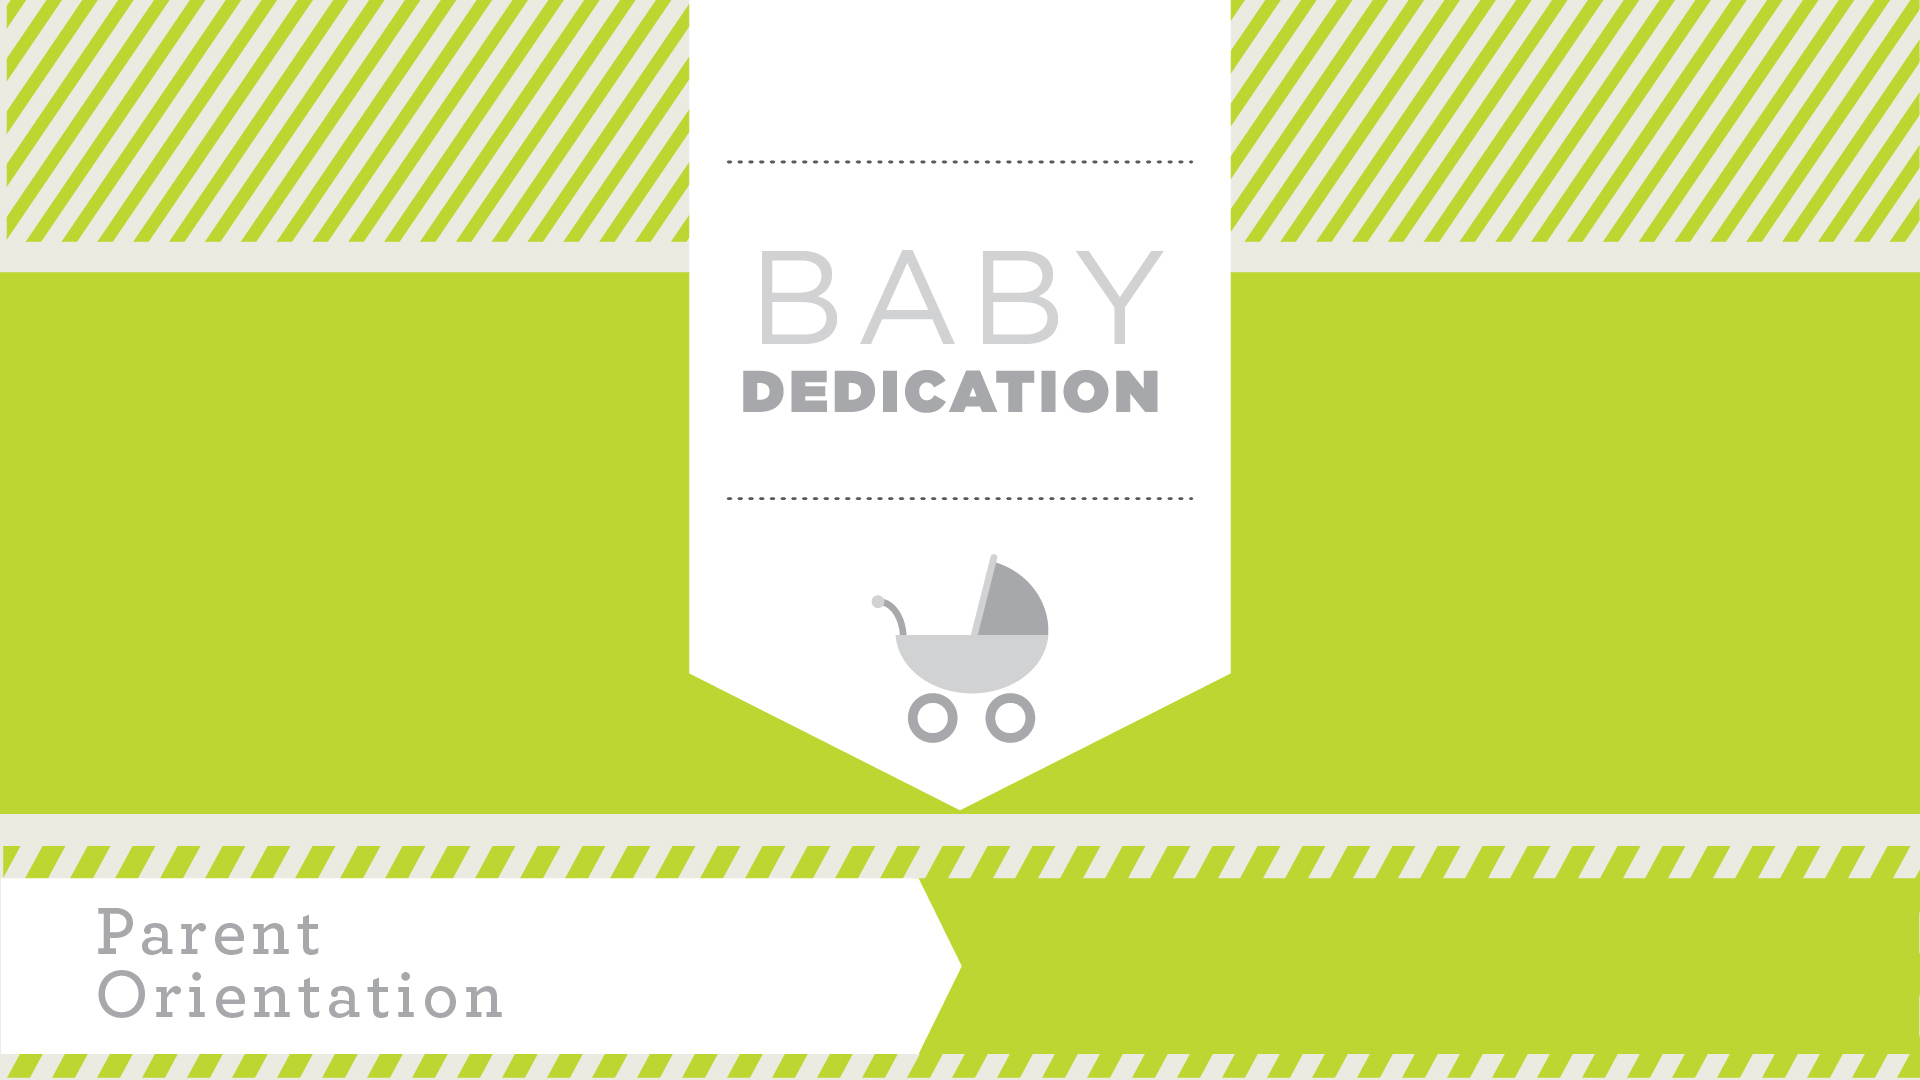 Baby dedication cover 04